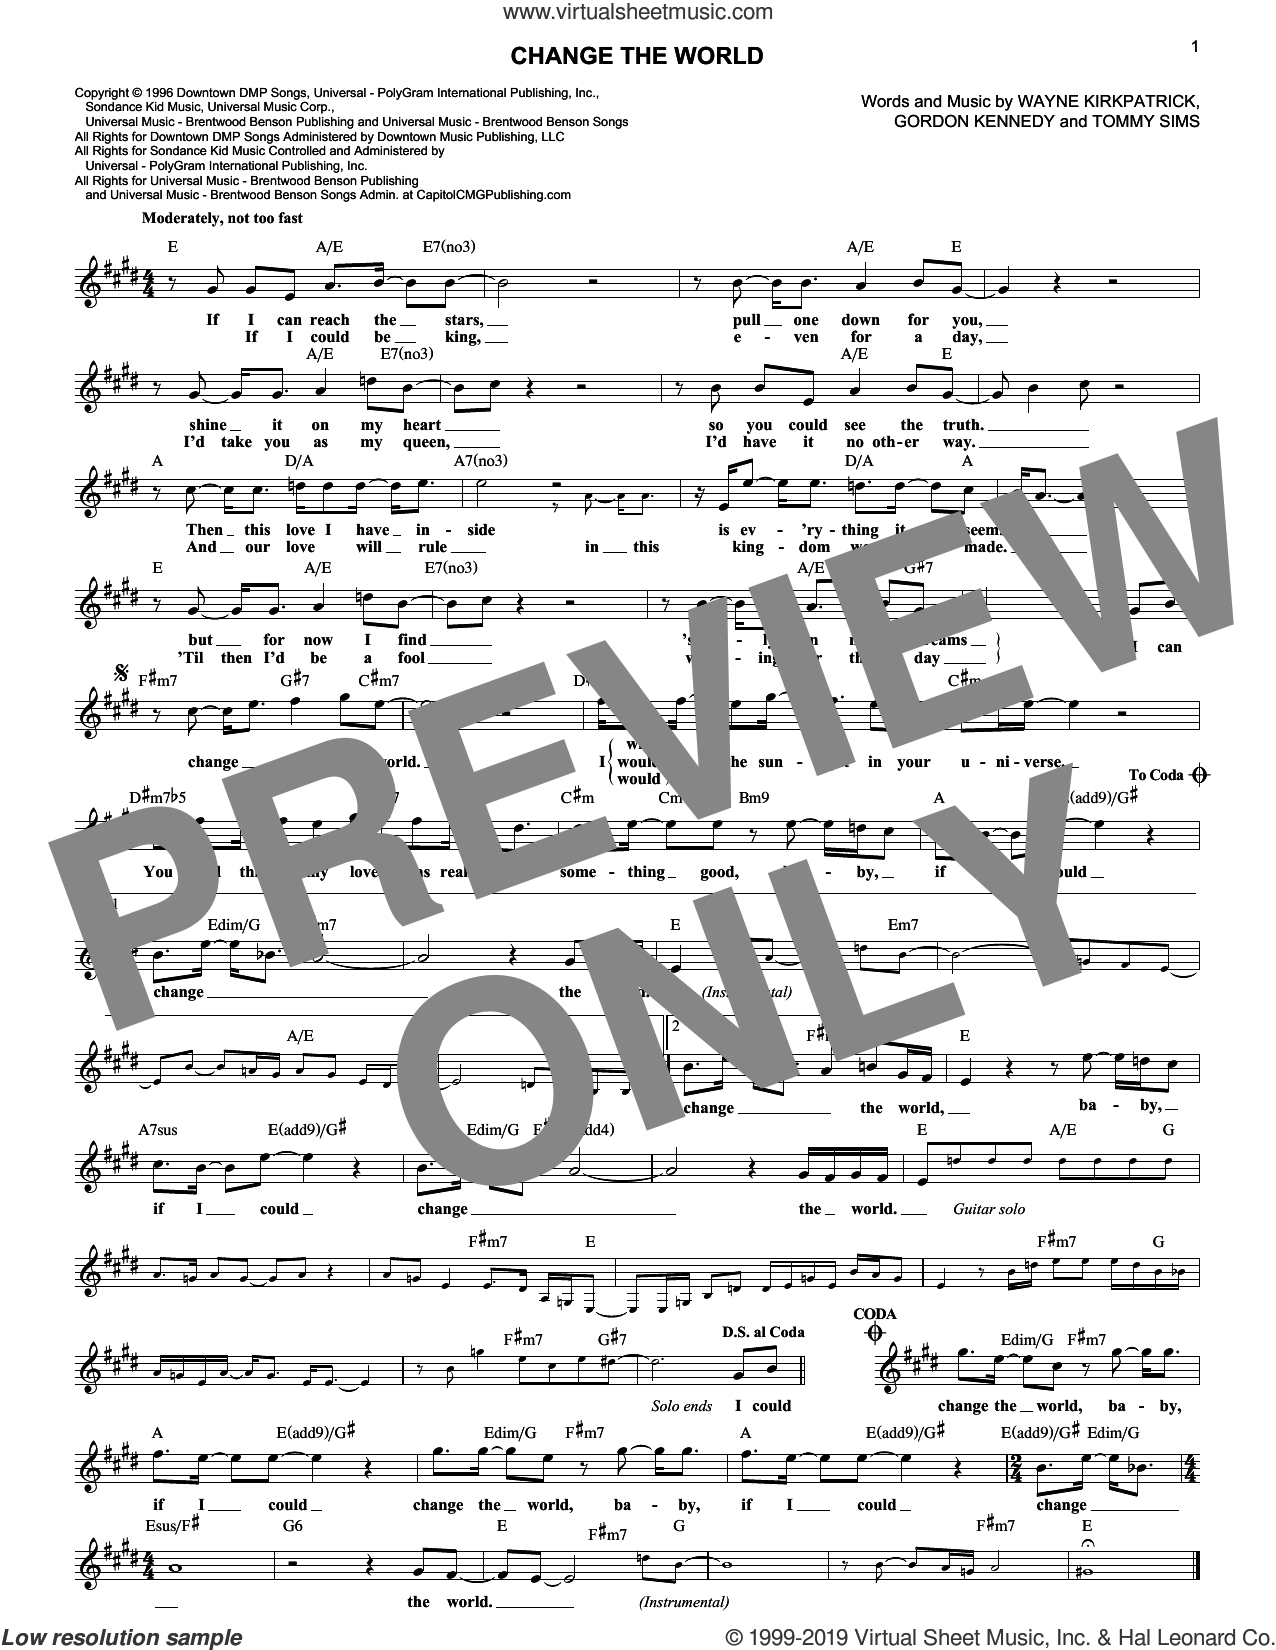 Change The World sheet music for voice and other instruments (fake book) by Eric Clapton, Wynonna, Gordon Kennedy, Tommy Sims and Wayne Kirkpatrick, intermediate skill level